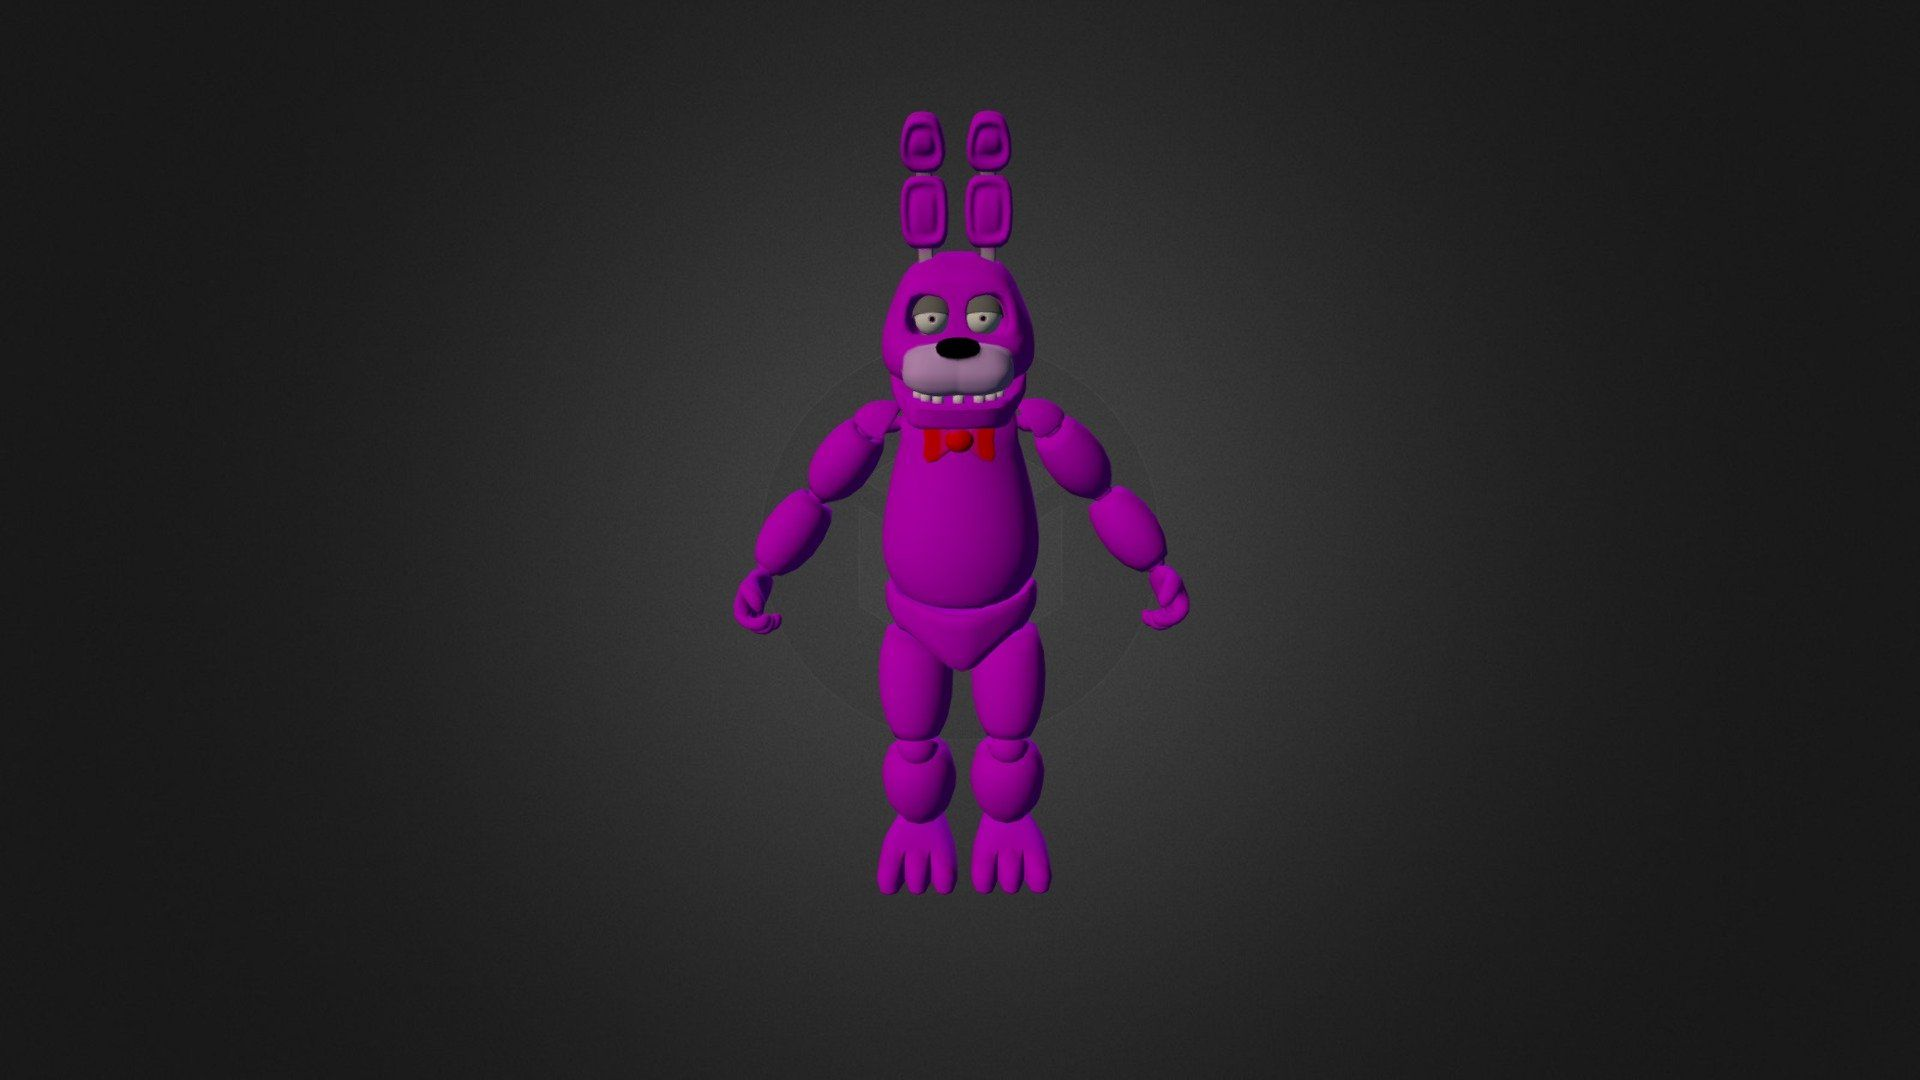 FNAF Bonnie best Wallpaper